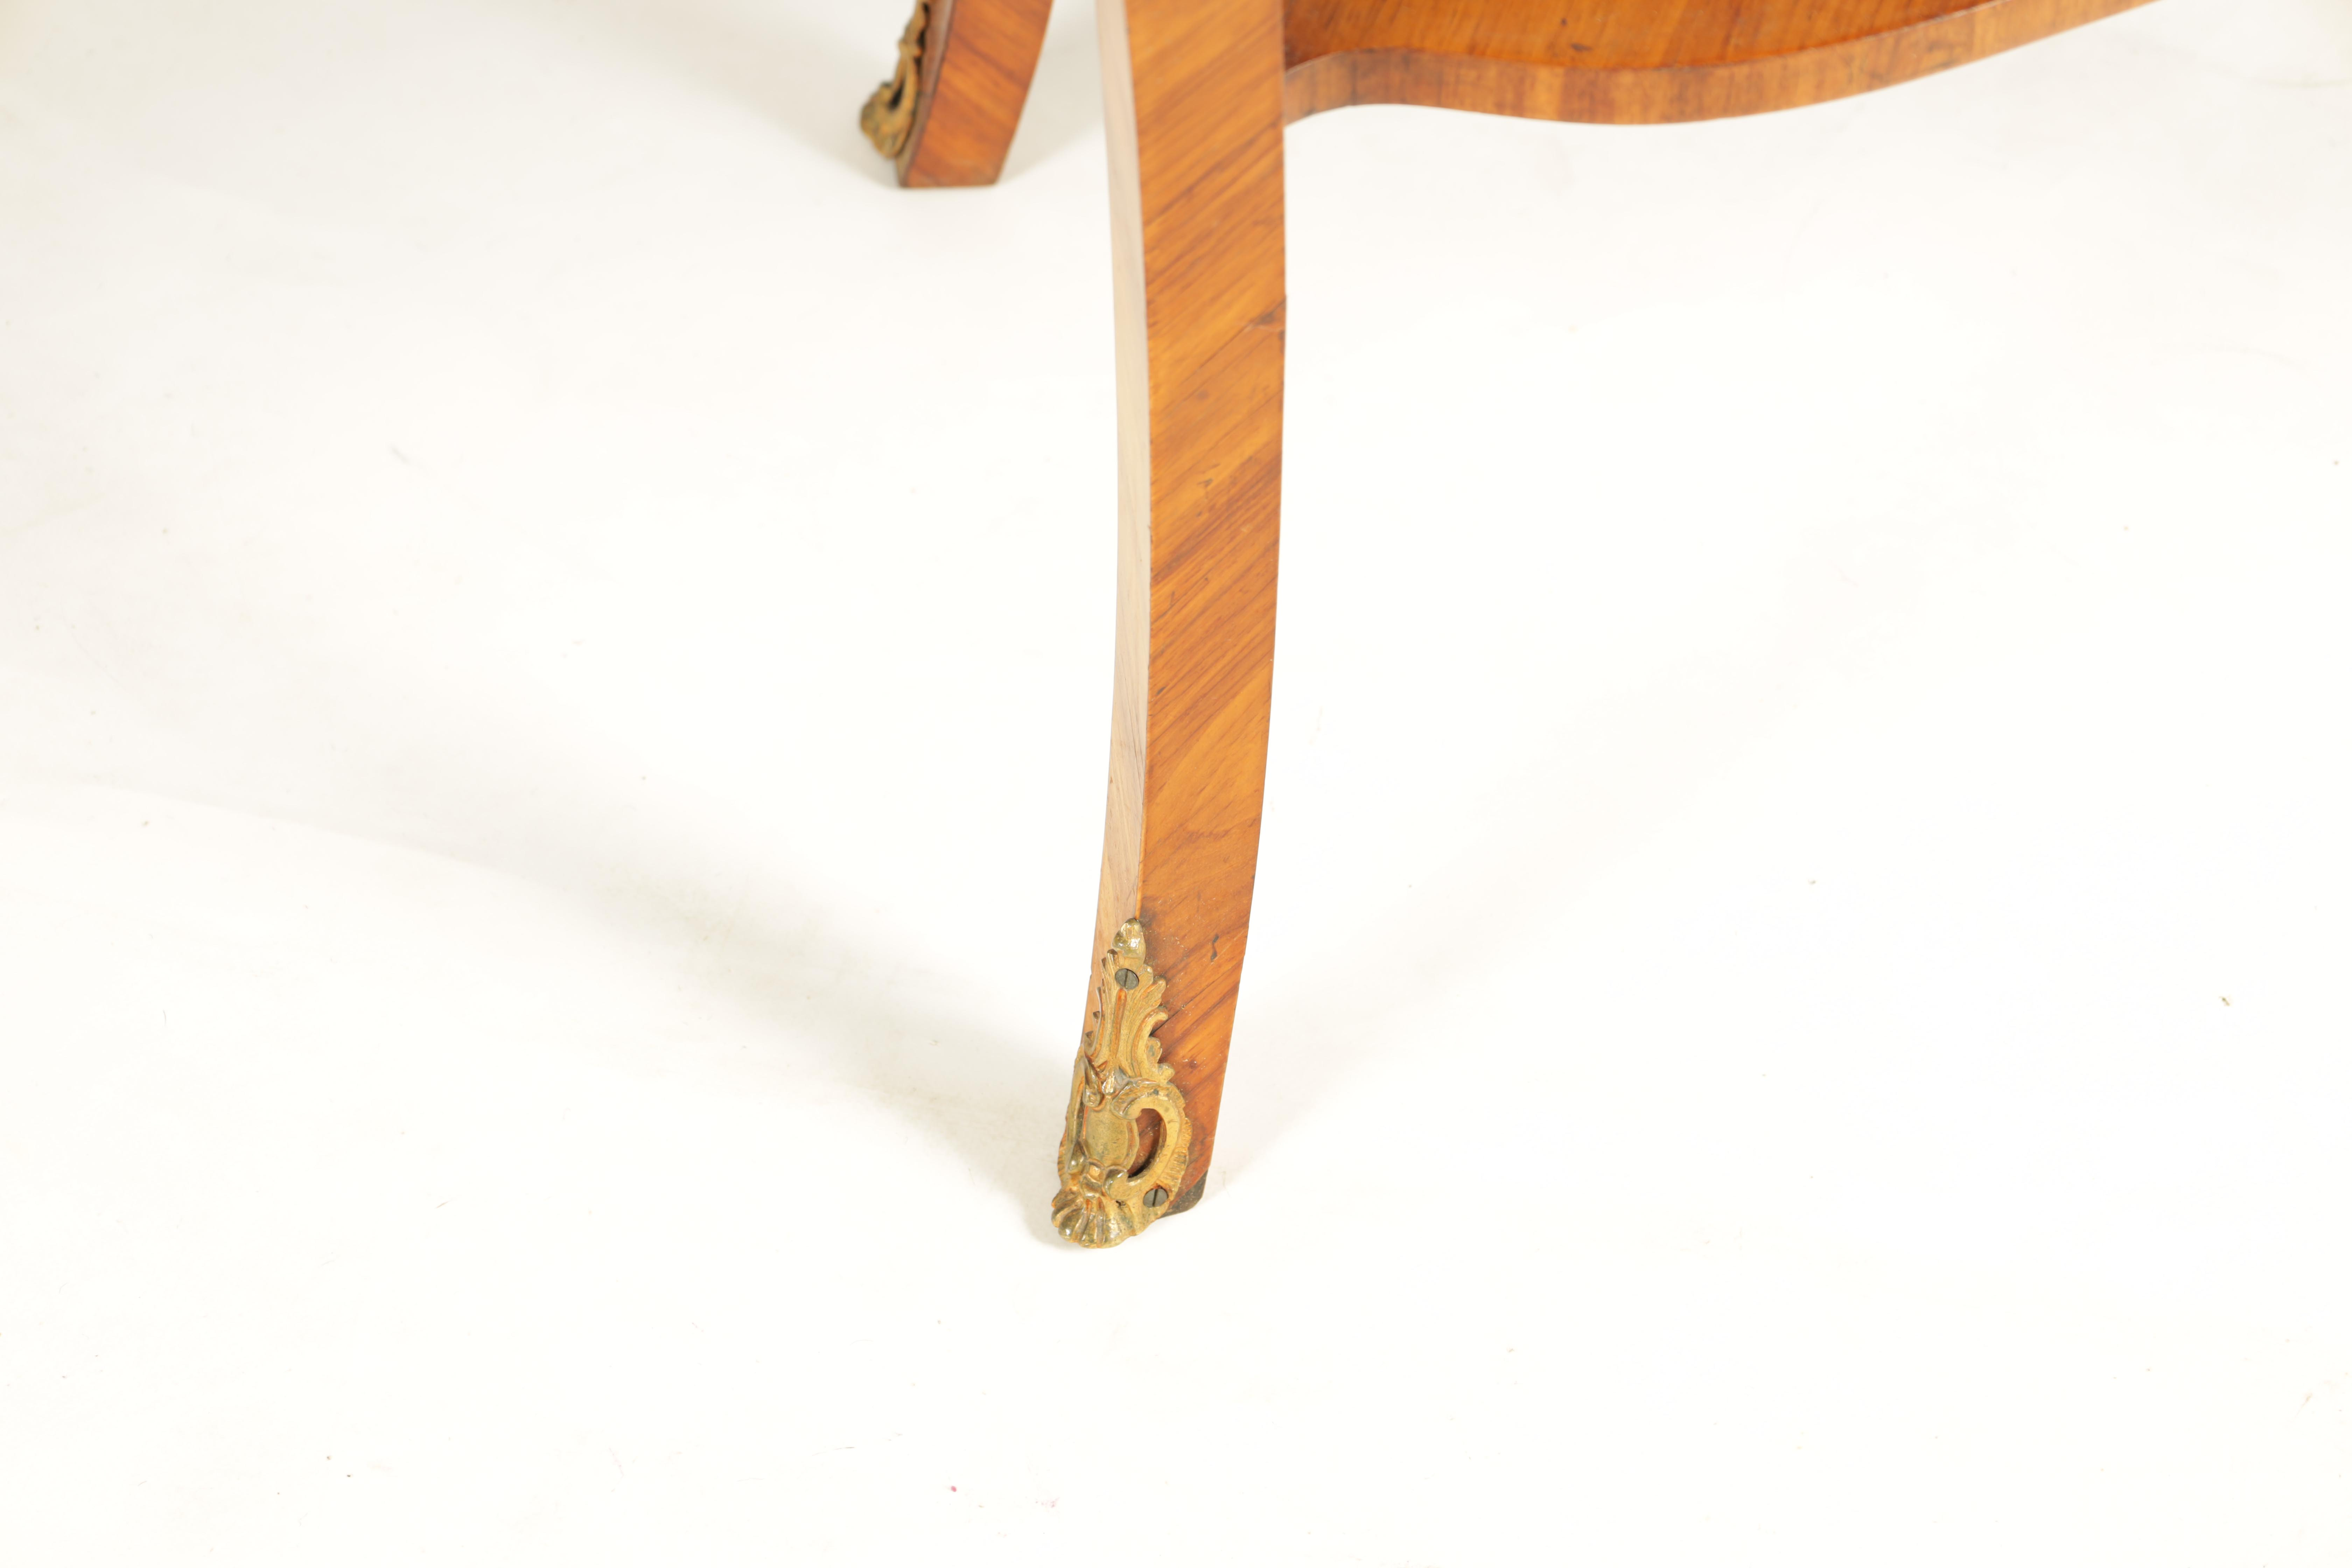 A FINE 19TH CENTURY MARQUETRY INLAID WALNUT KIDNEY SHAPED WRITING TABLE with raised brass - Image 4 of 10